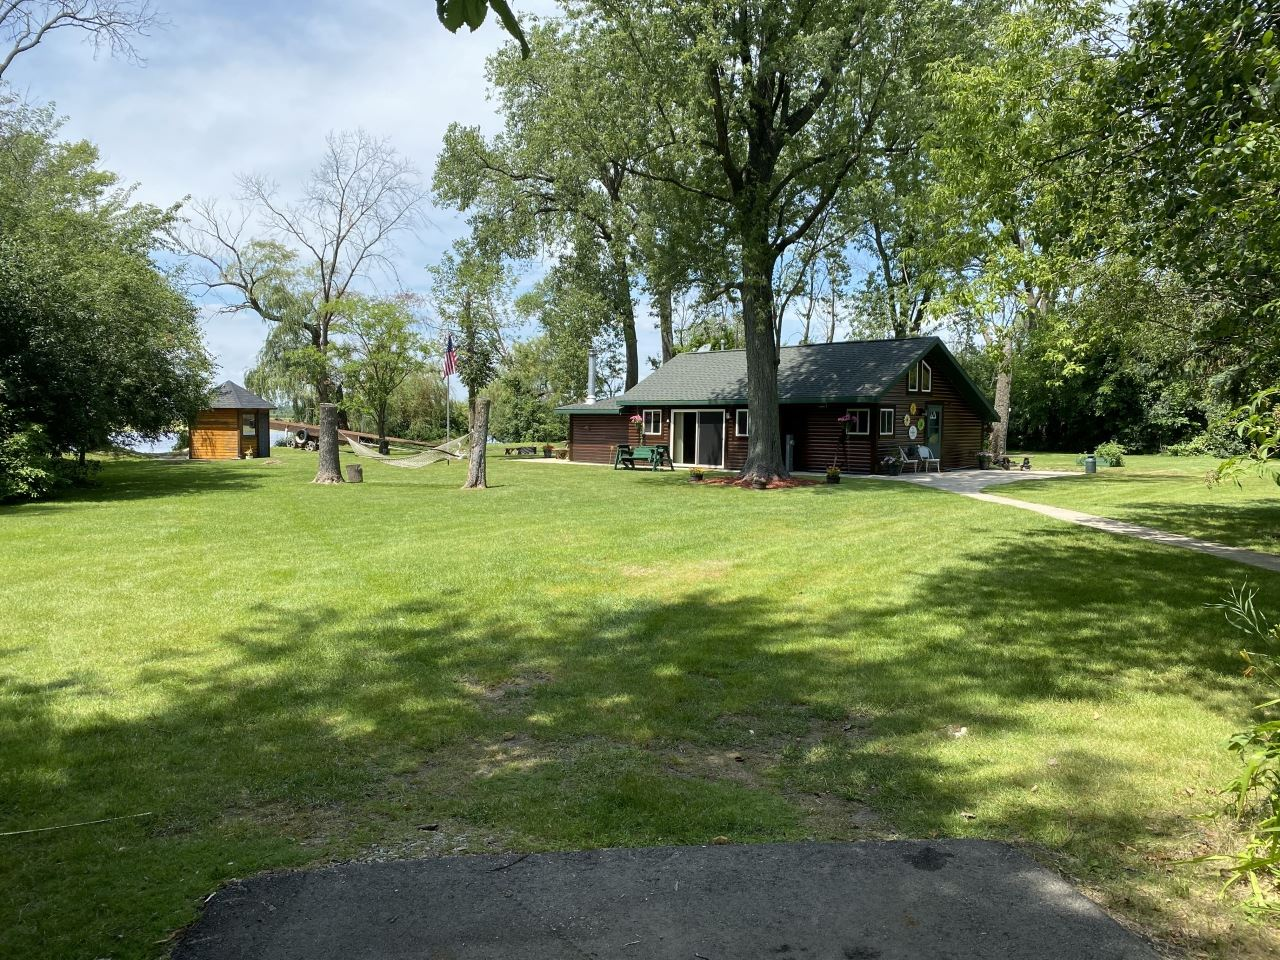 29430 Riverview Ln, Waterford, WI 53185 - #: 1700986